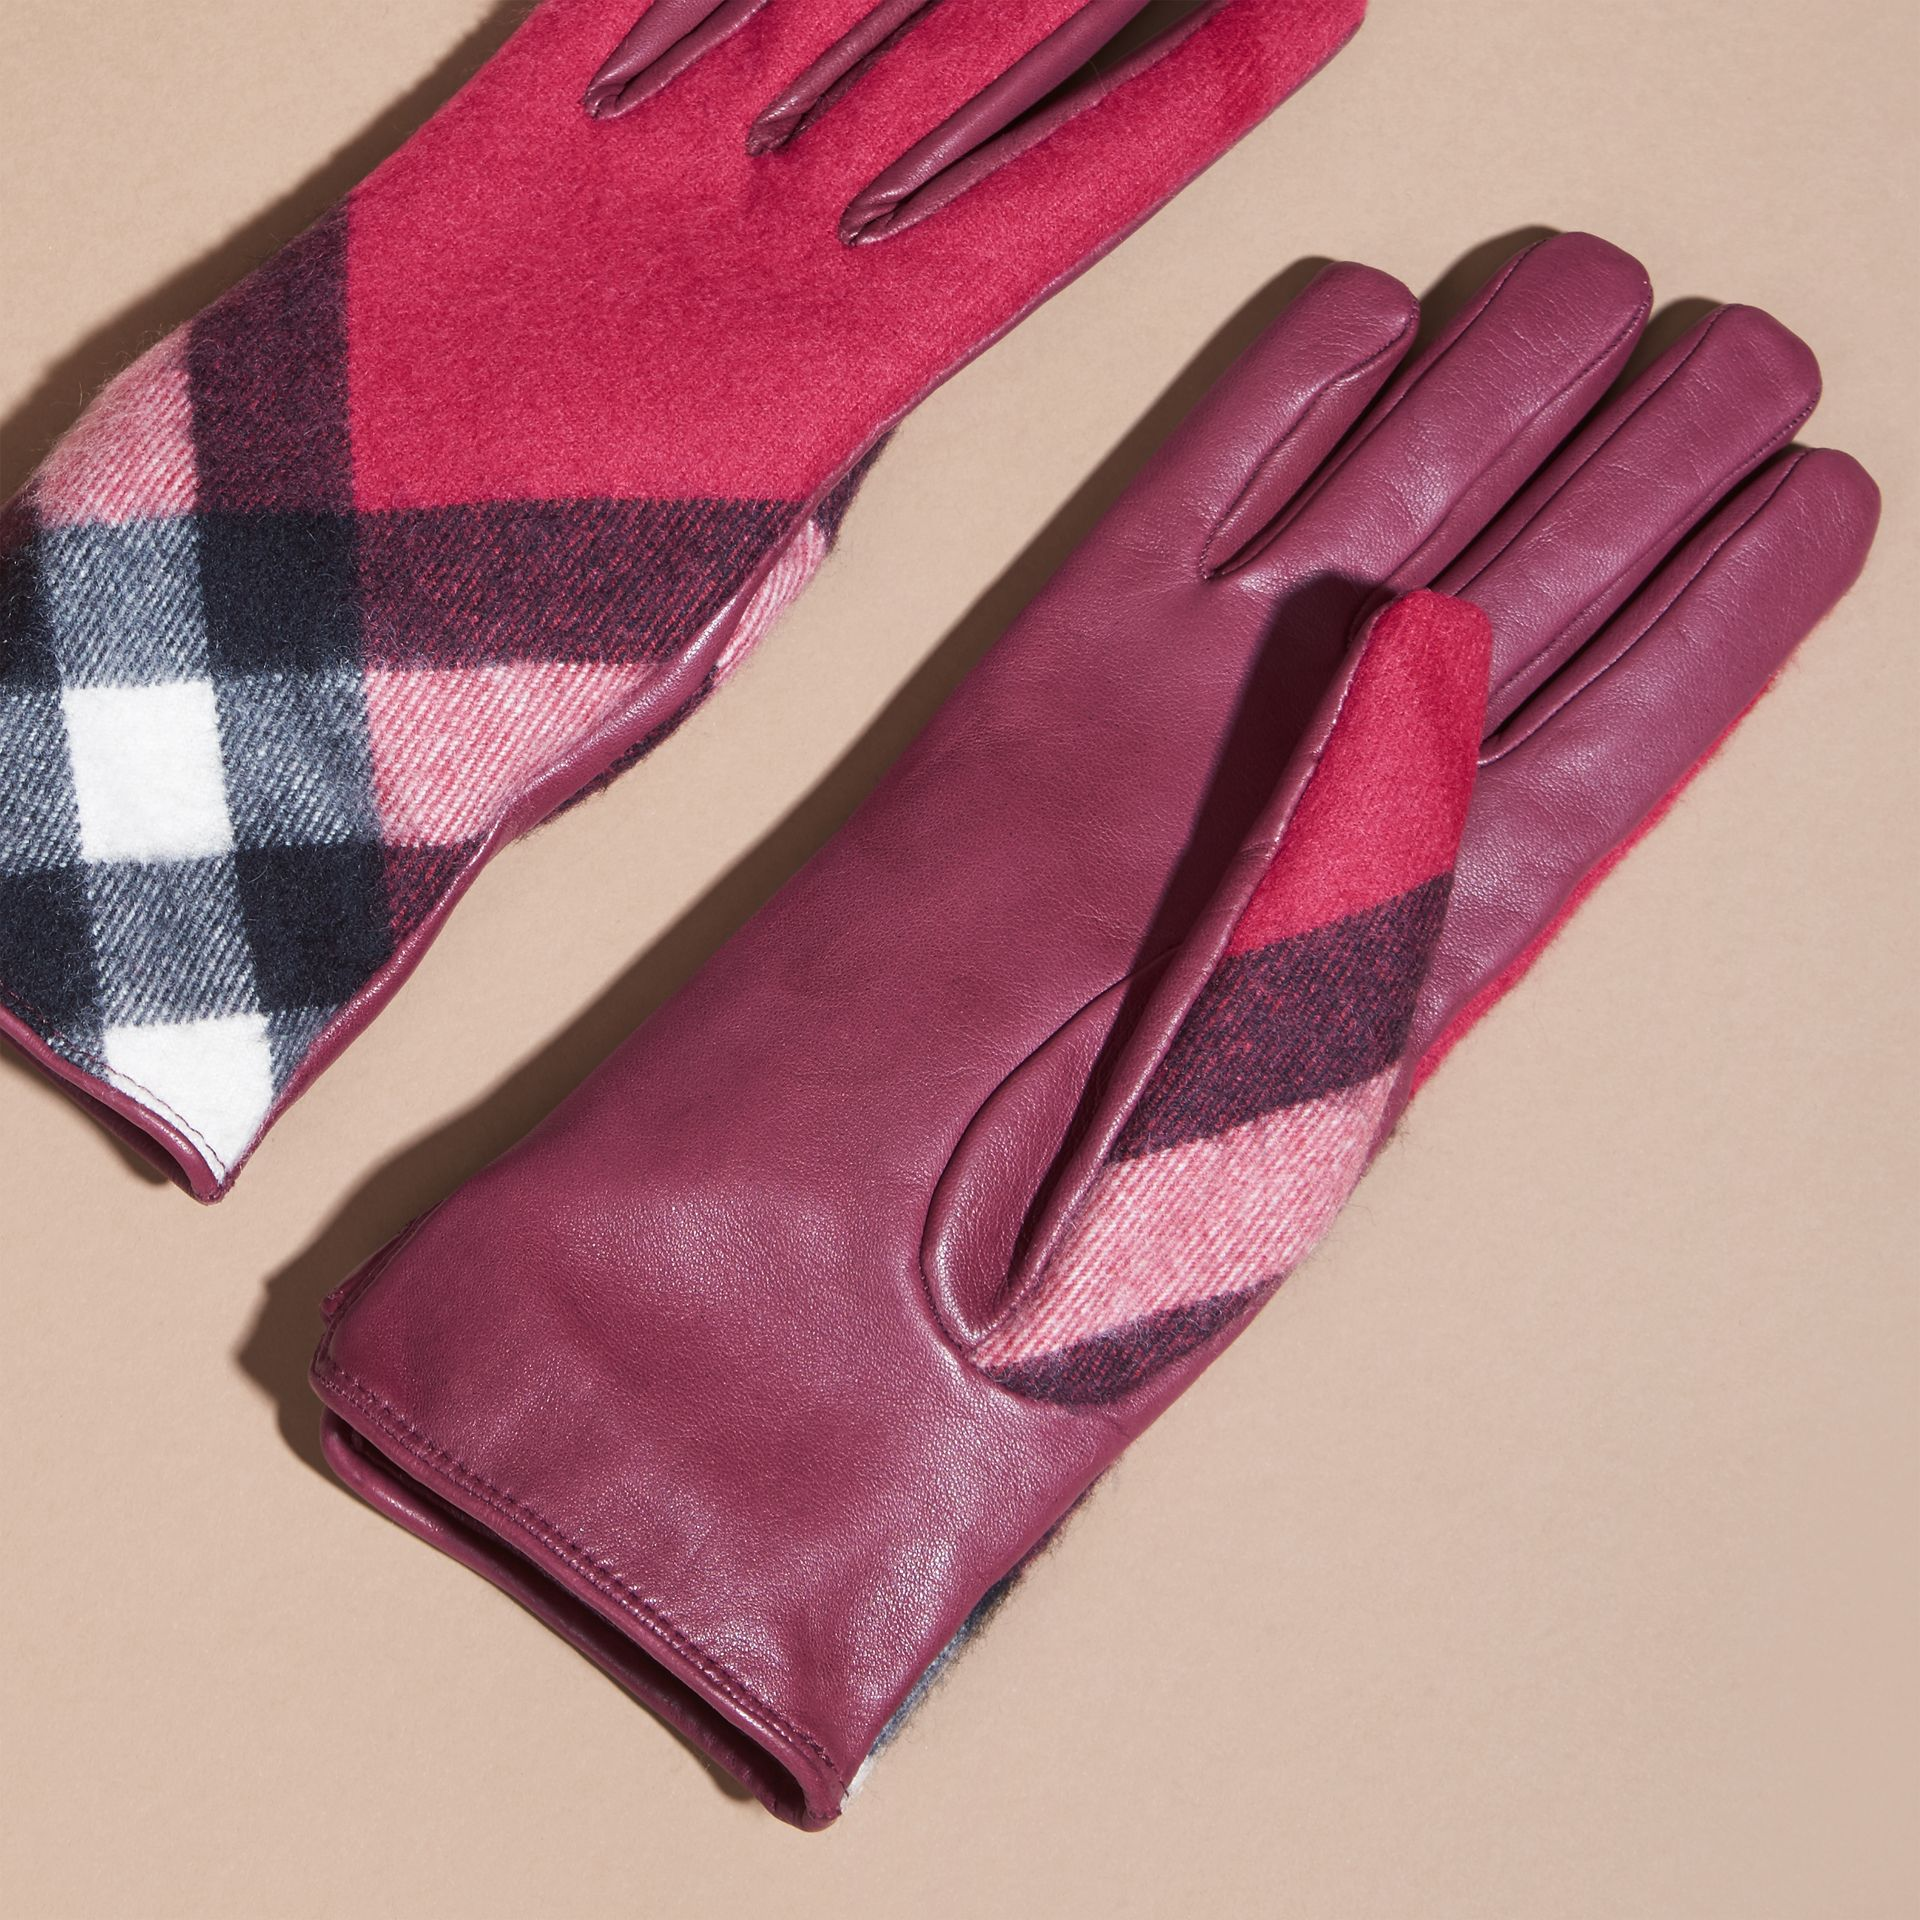 Fuchsia Leather and Check Cashmere Gloves Fuchsia - gallery image 3